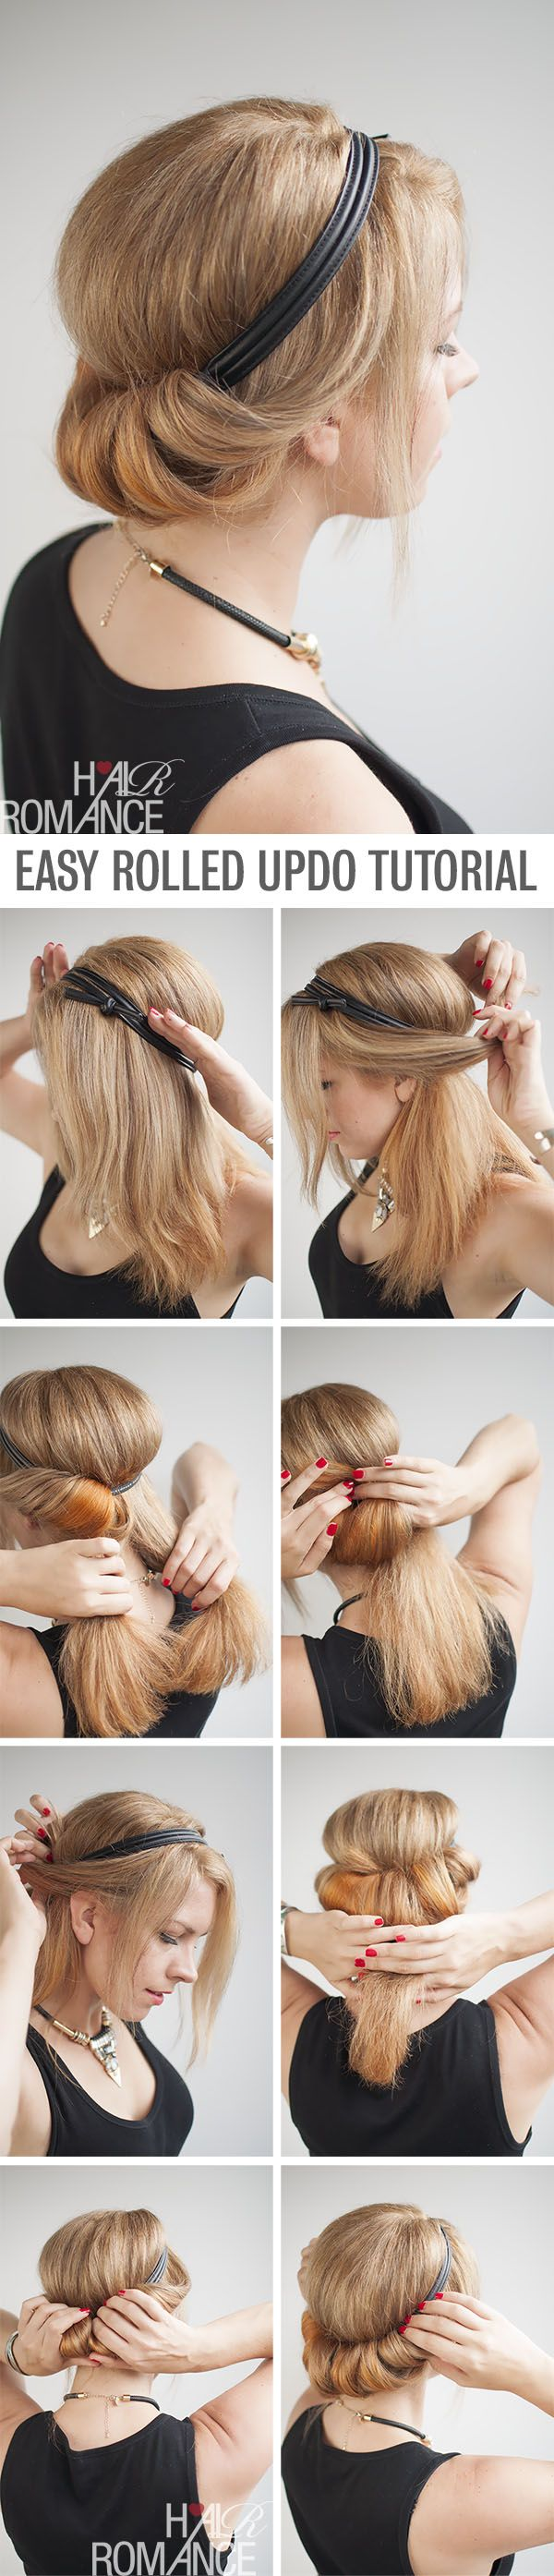 How to do a rolled updo - Hairstyle tutorial by @Tonya Seemann Seemann Seemann Potts Romance